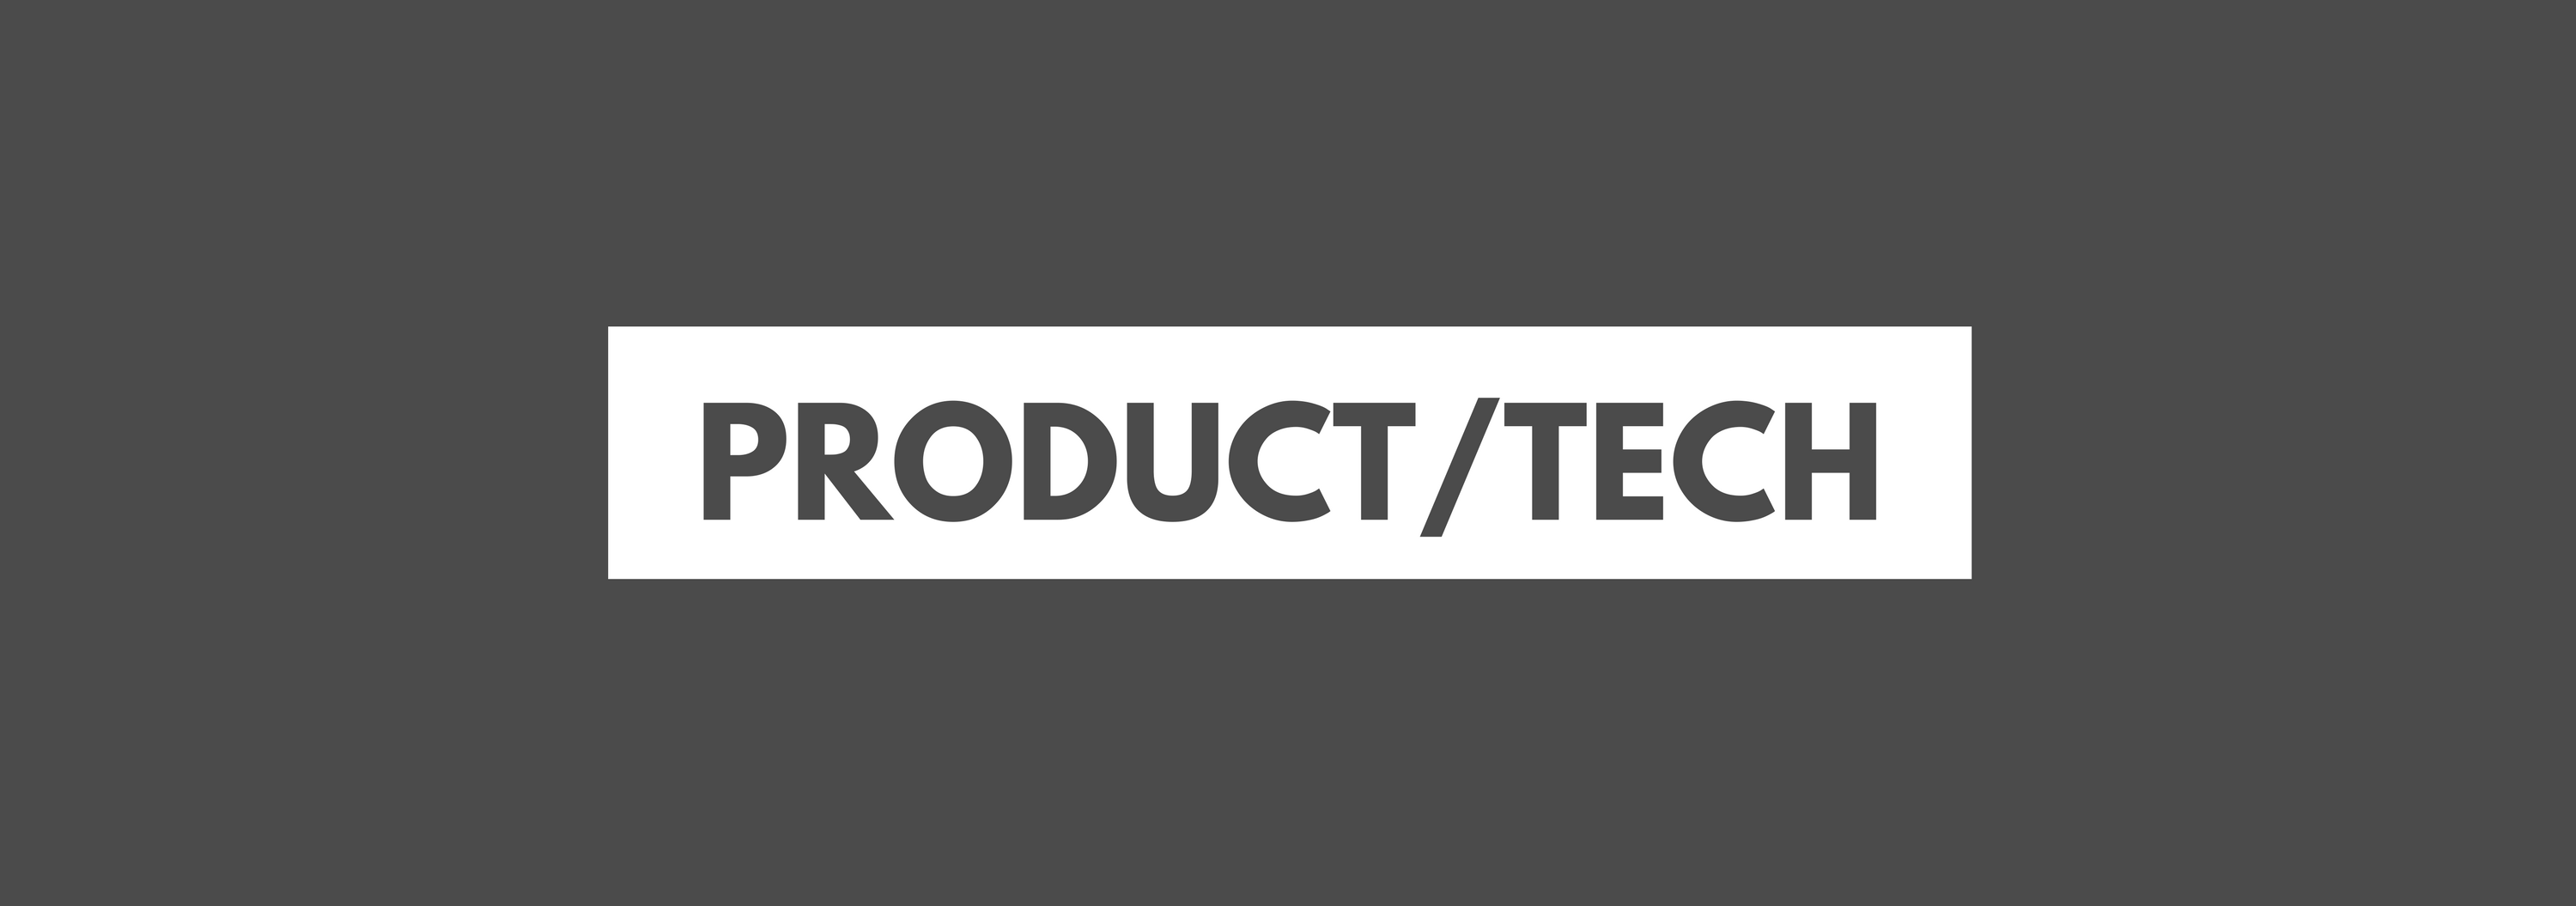 Product/Tech